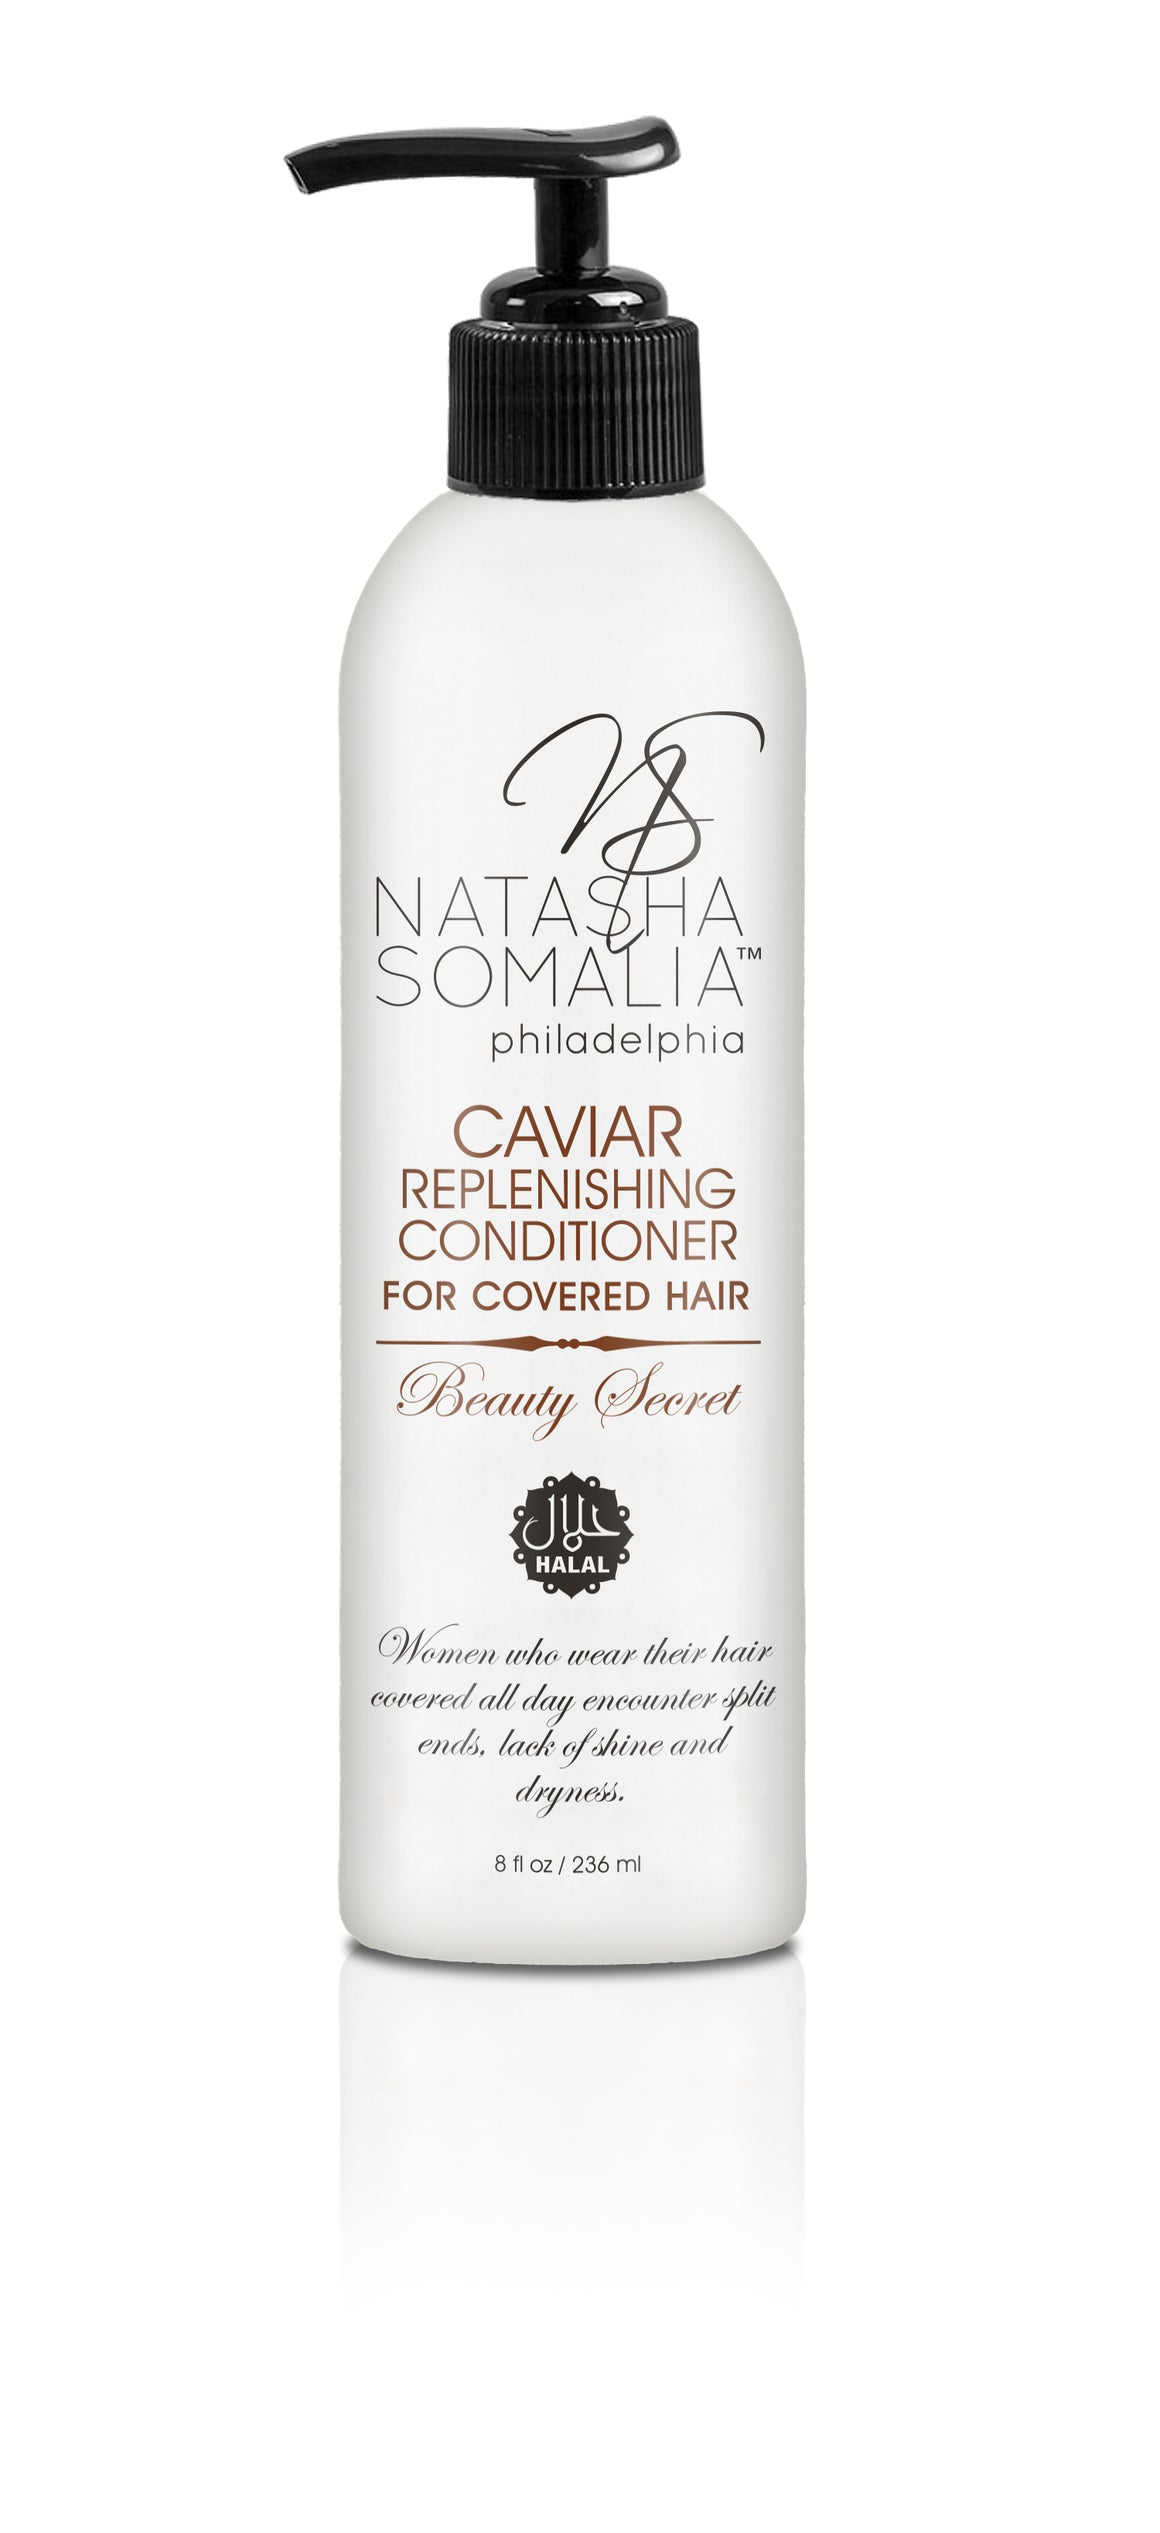 CAVIAR REPLENISHING CONDITIONER FOR COVERED HAIR